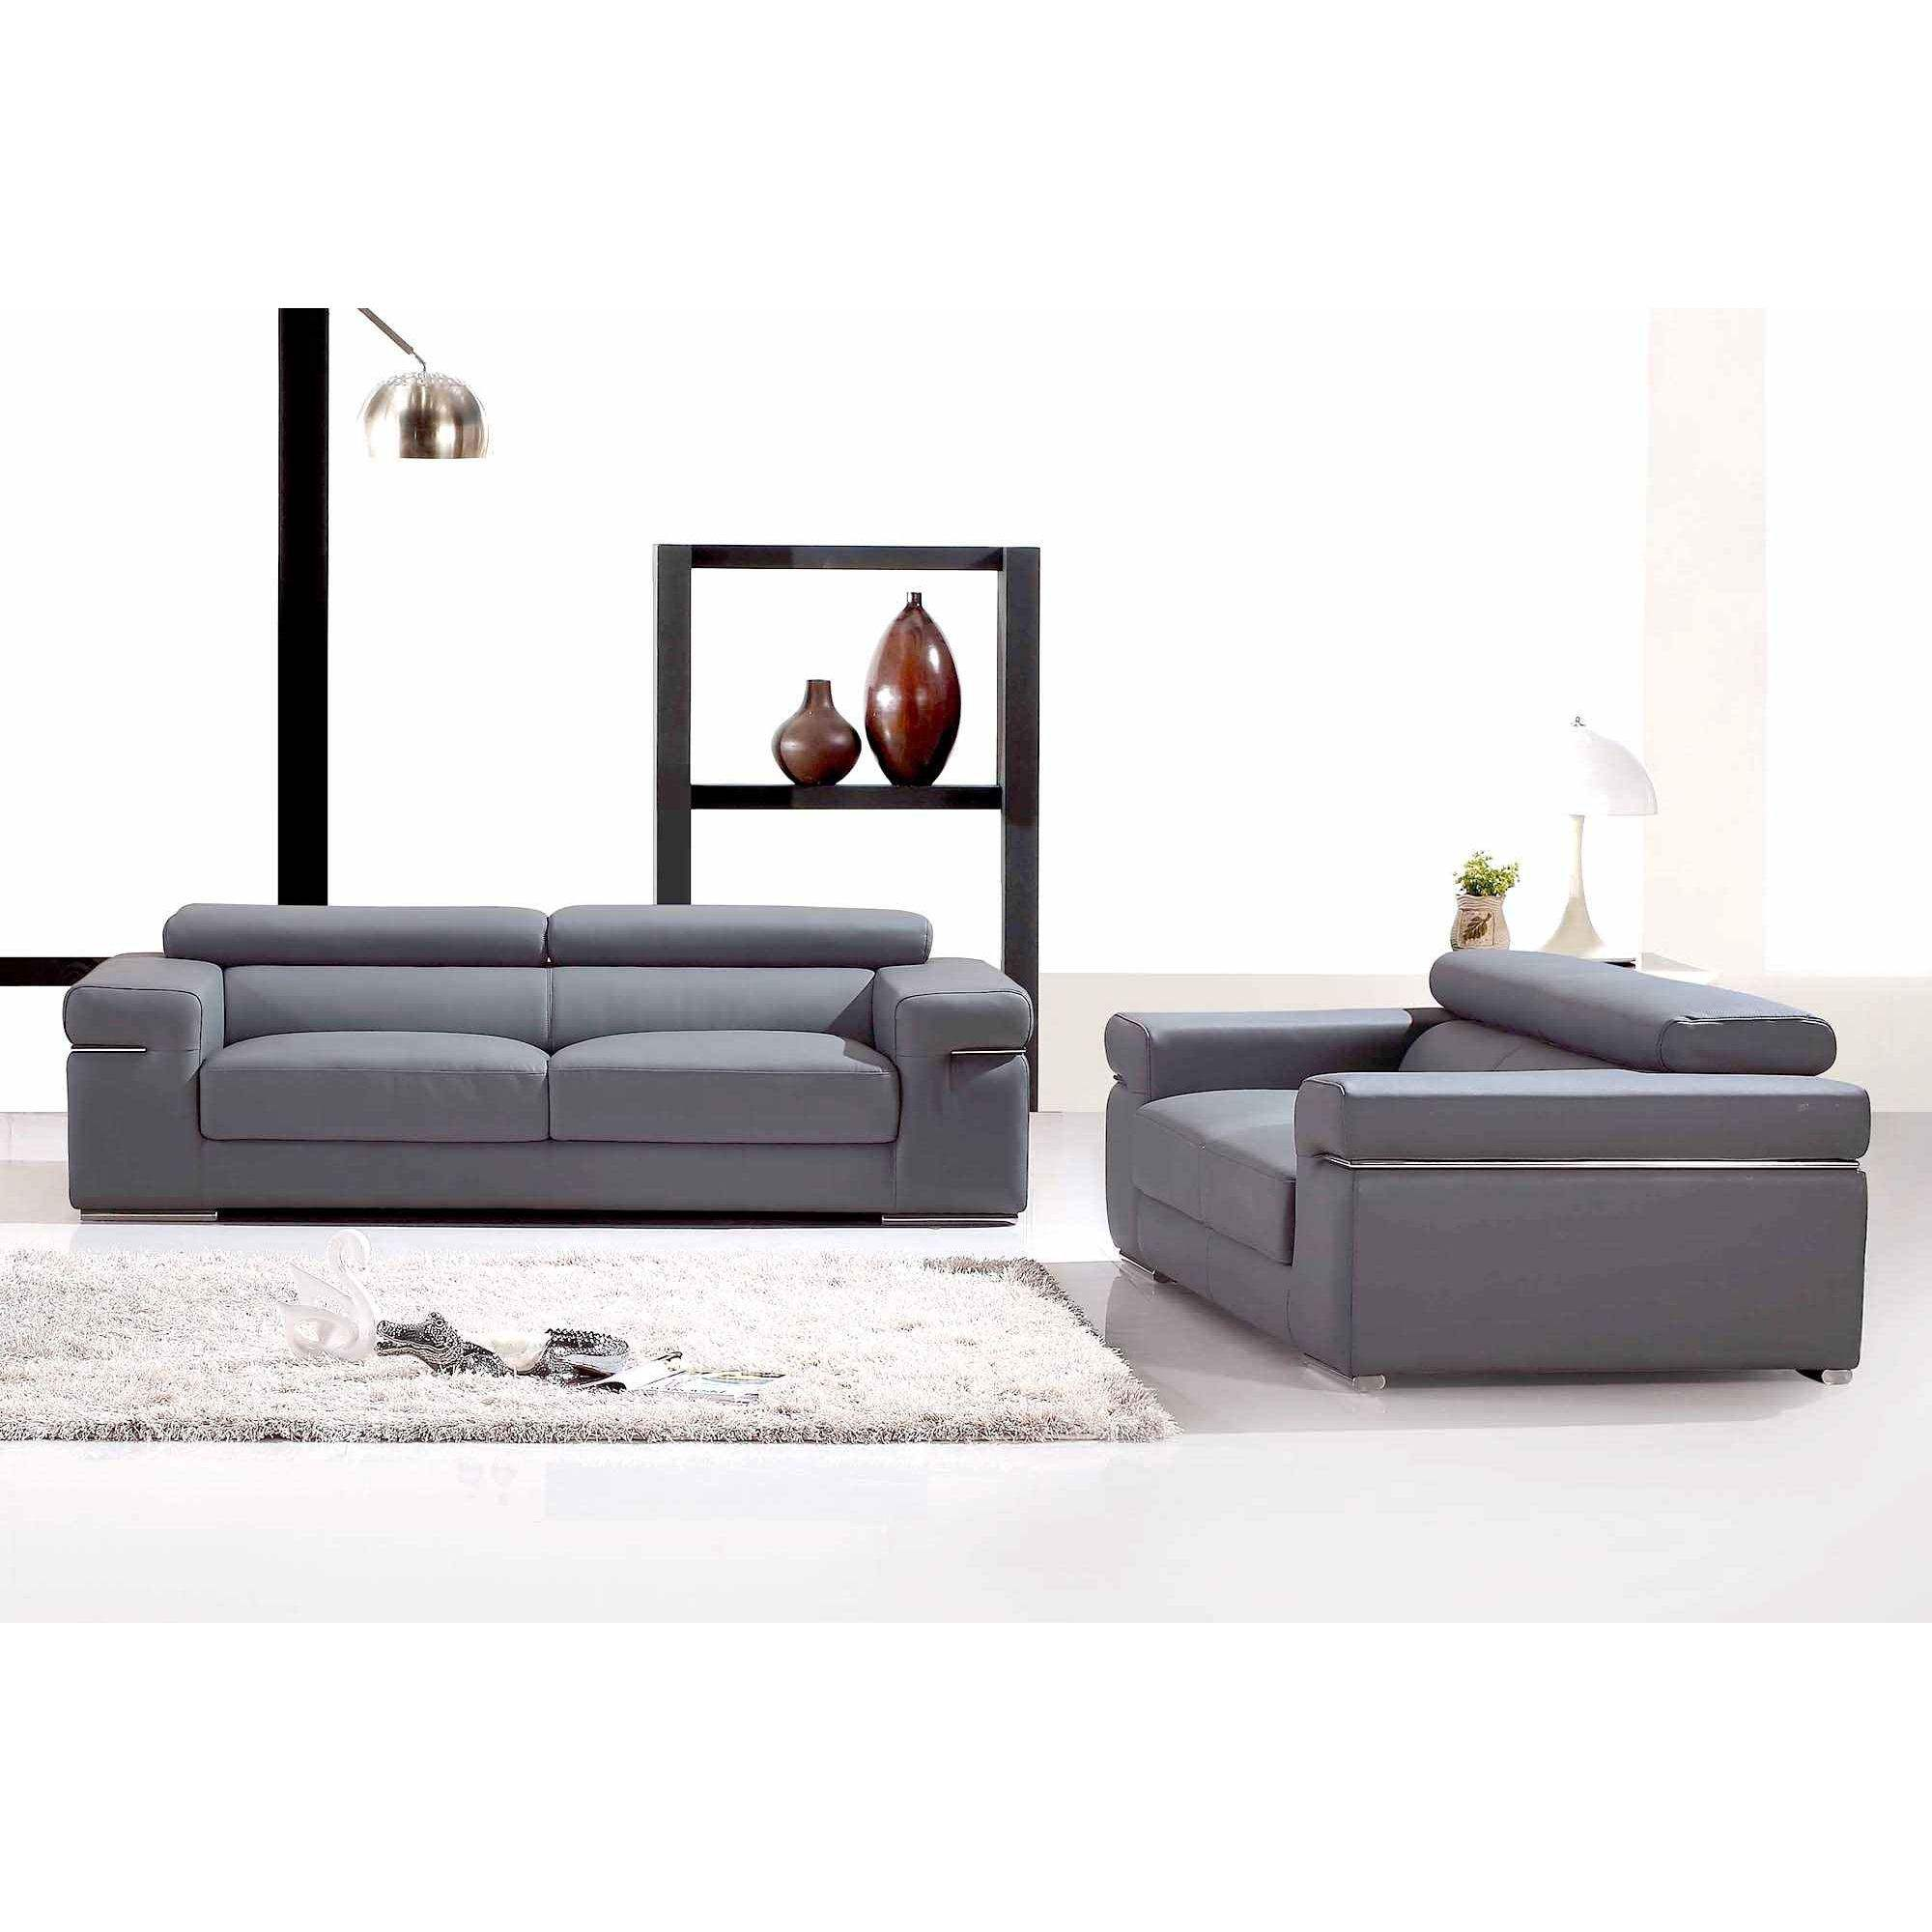 Deco in paris ensemble canape 3 2 places en cuir gris for Canape 3 places gris